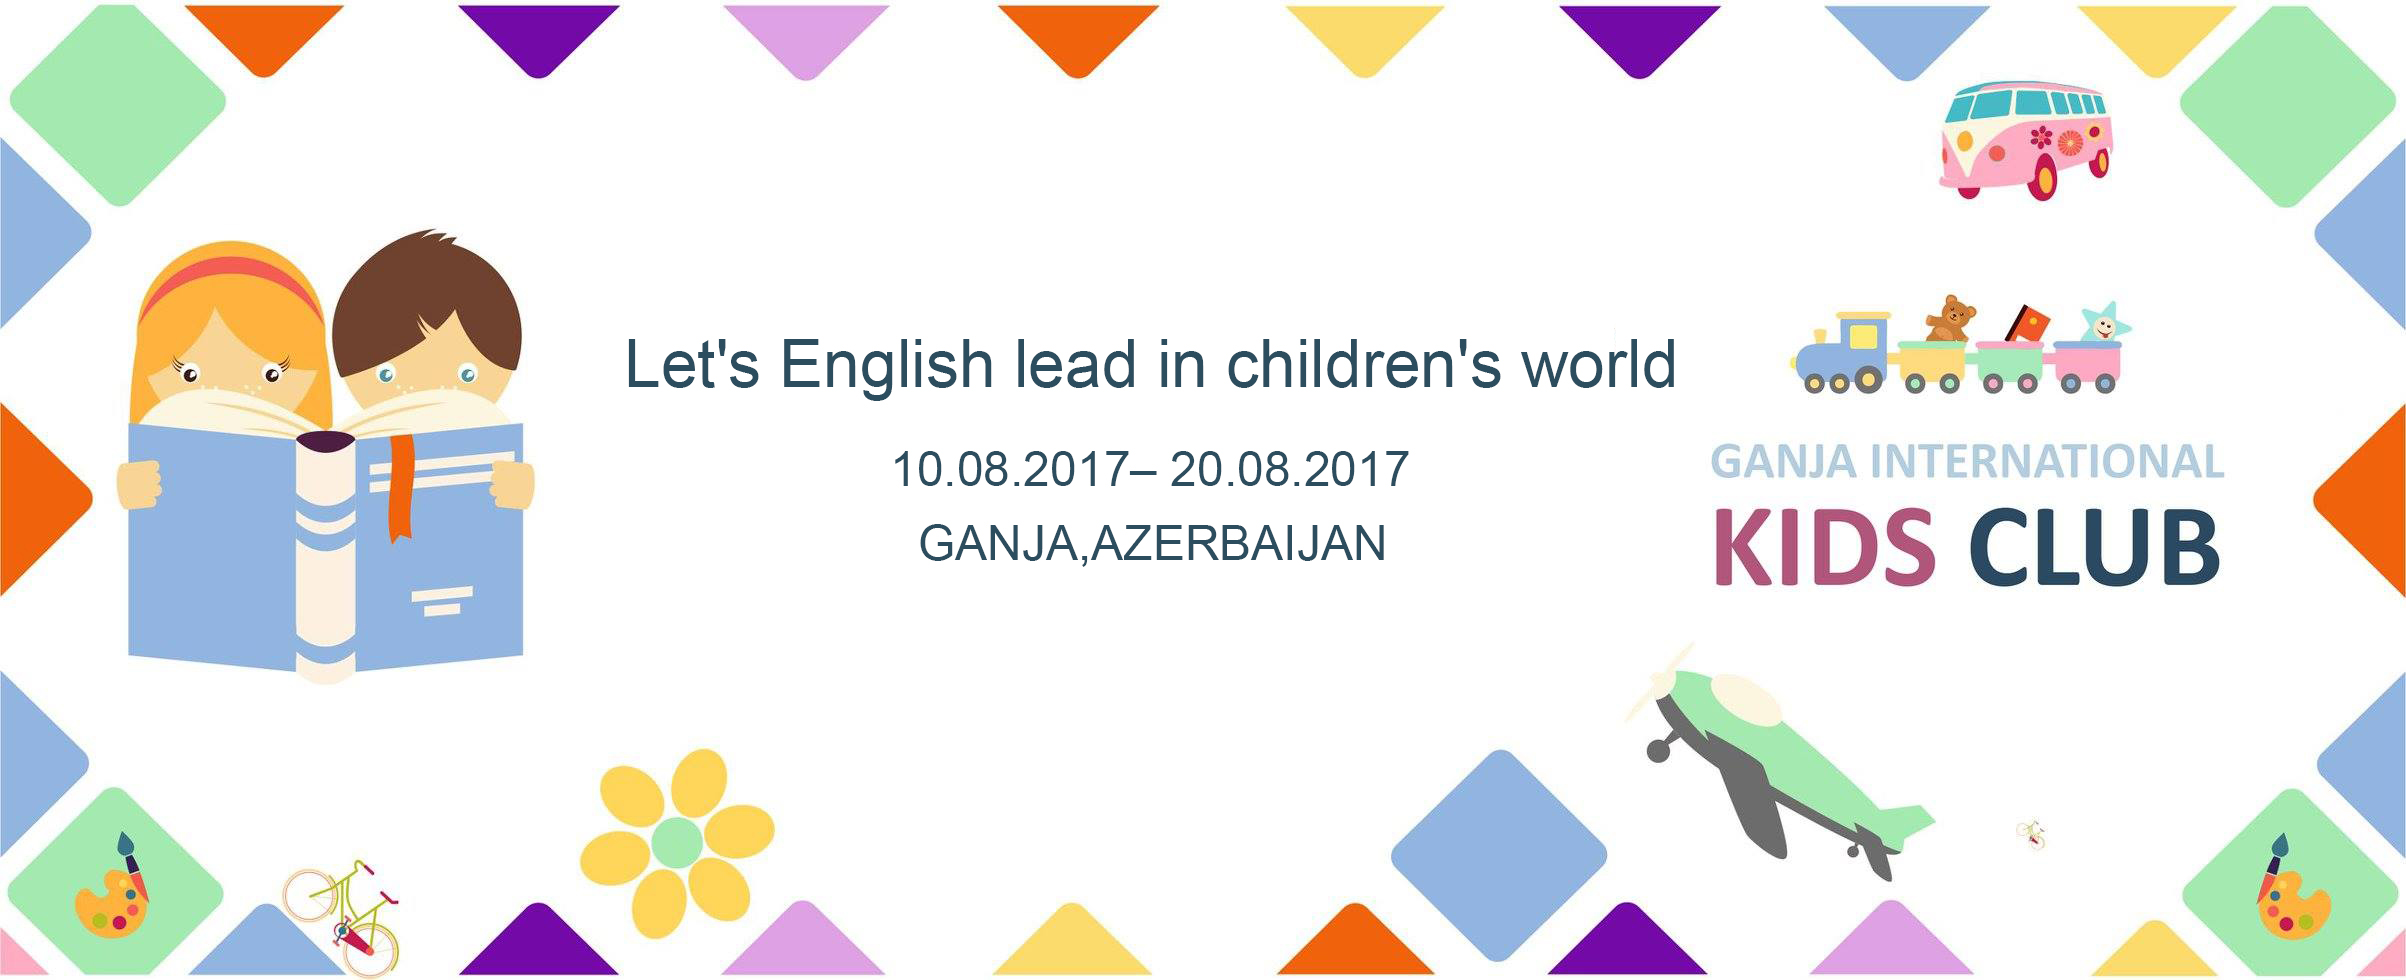 volunteer project: Let's English lead in children's world photo 1